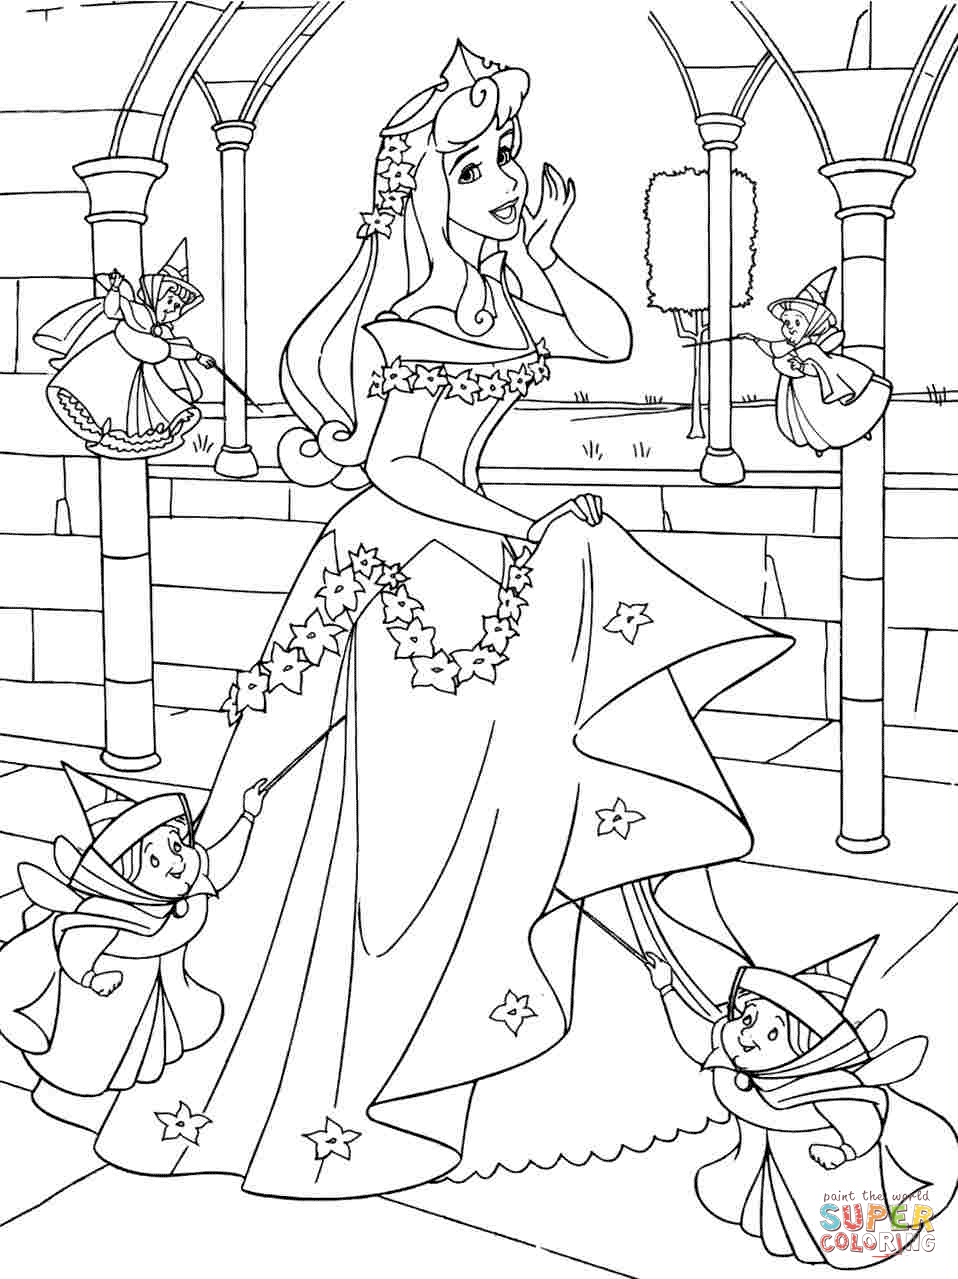 958x1279 Disney Sleeping Beauty Cartoon Coloring Pages For Amusing Draw